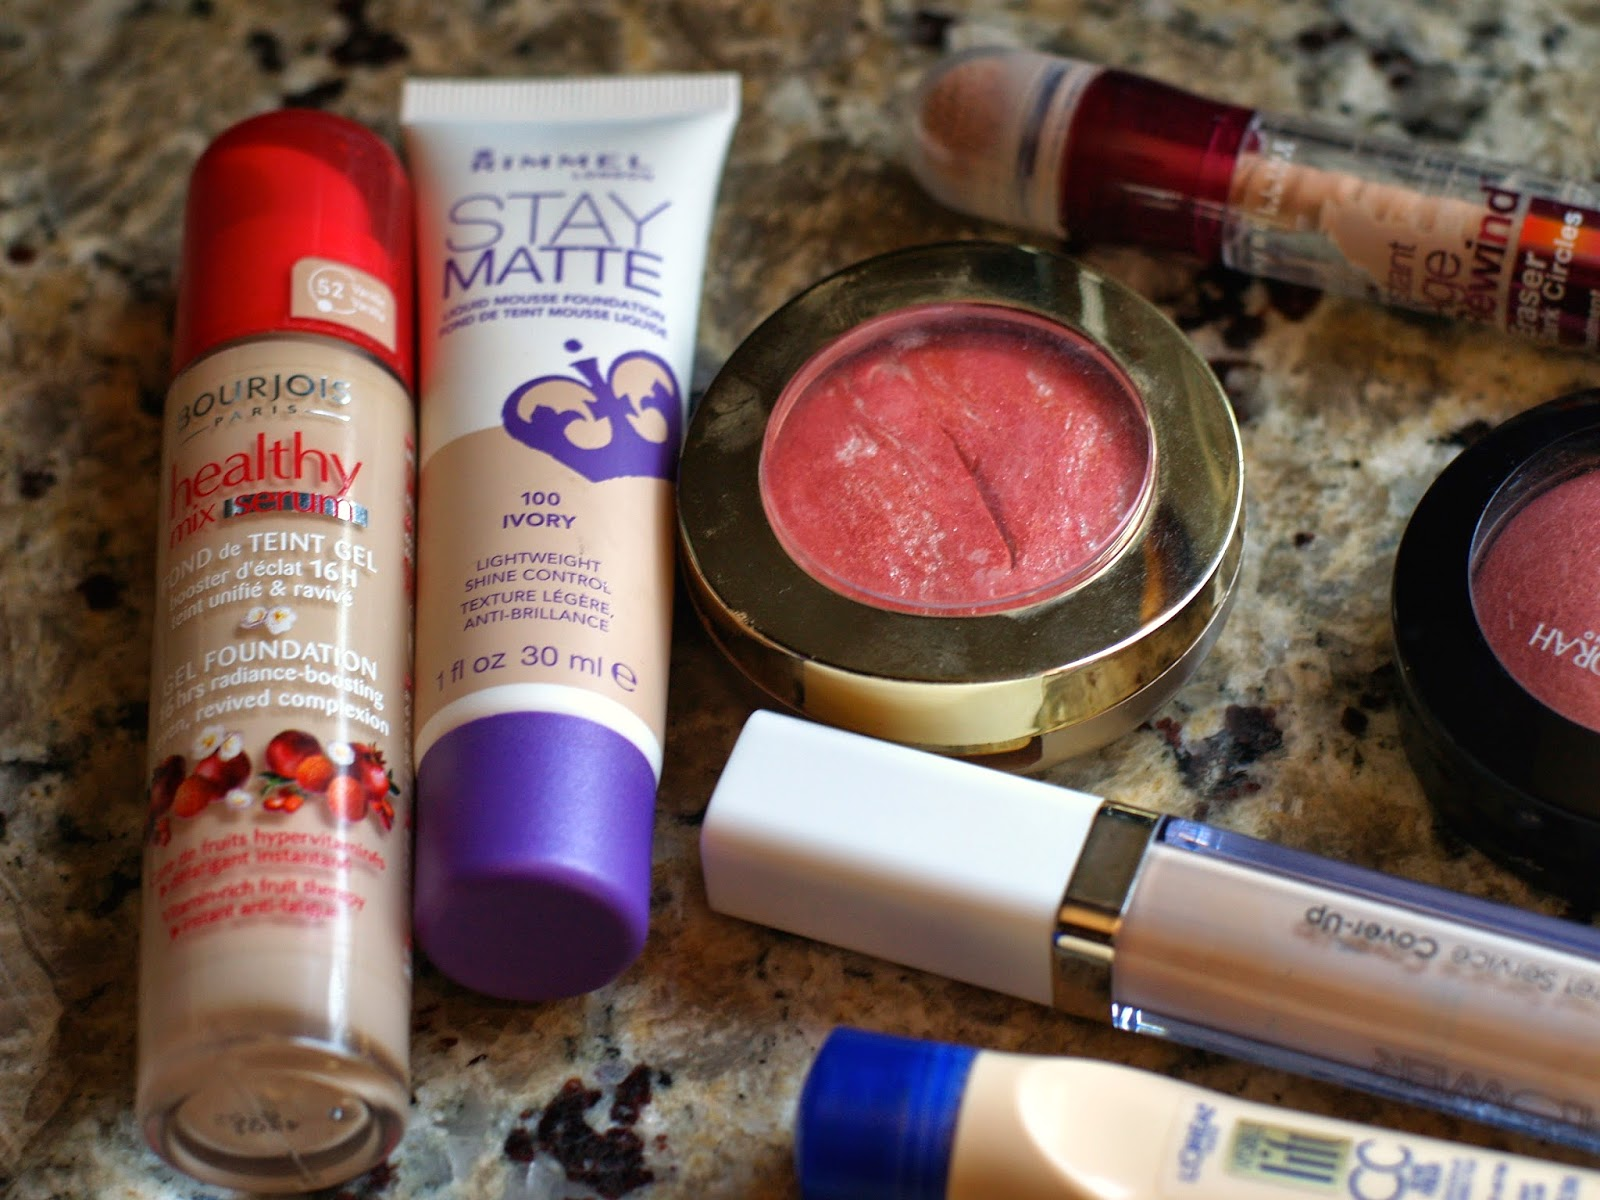 Top 5 Drugstore Face Products